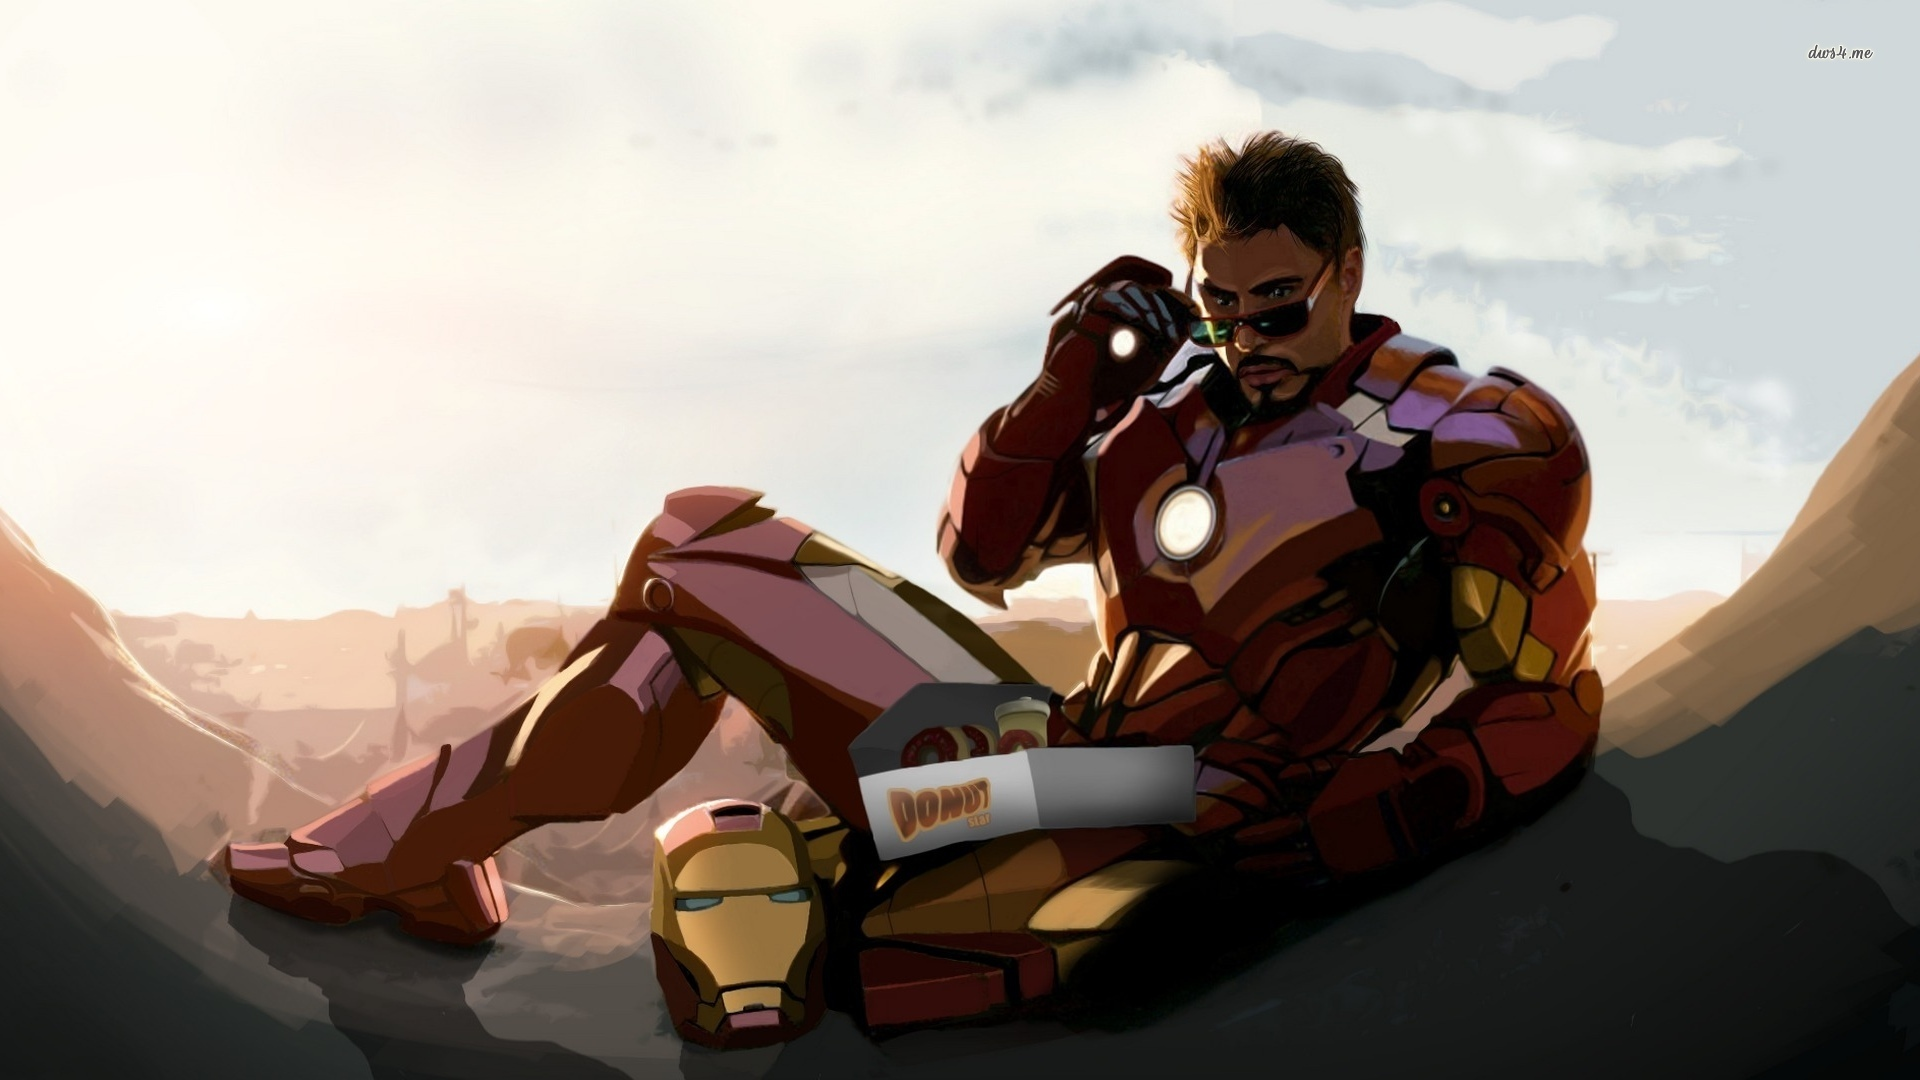 iron man wallpaper 22 1920x1080